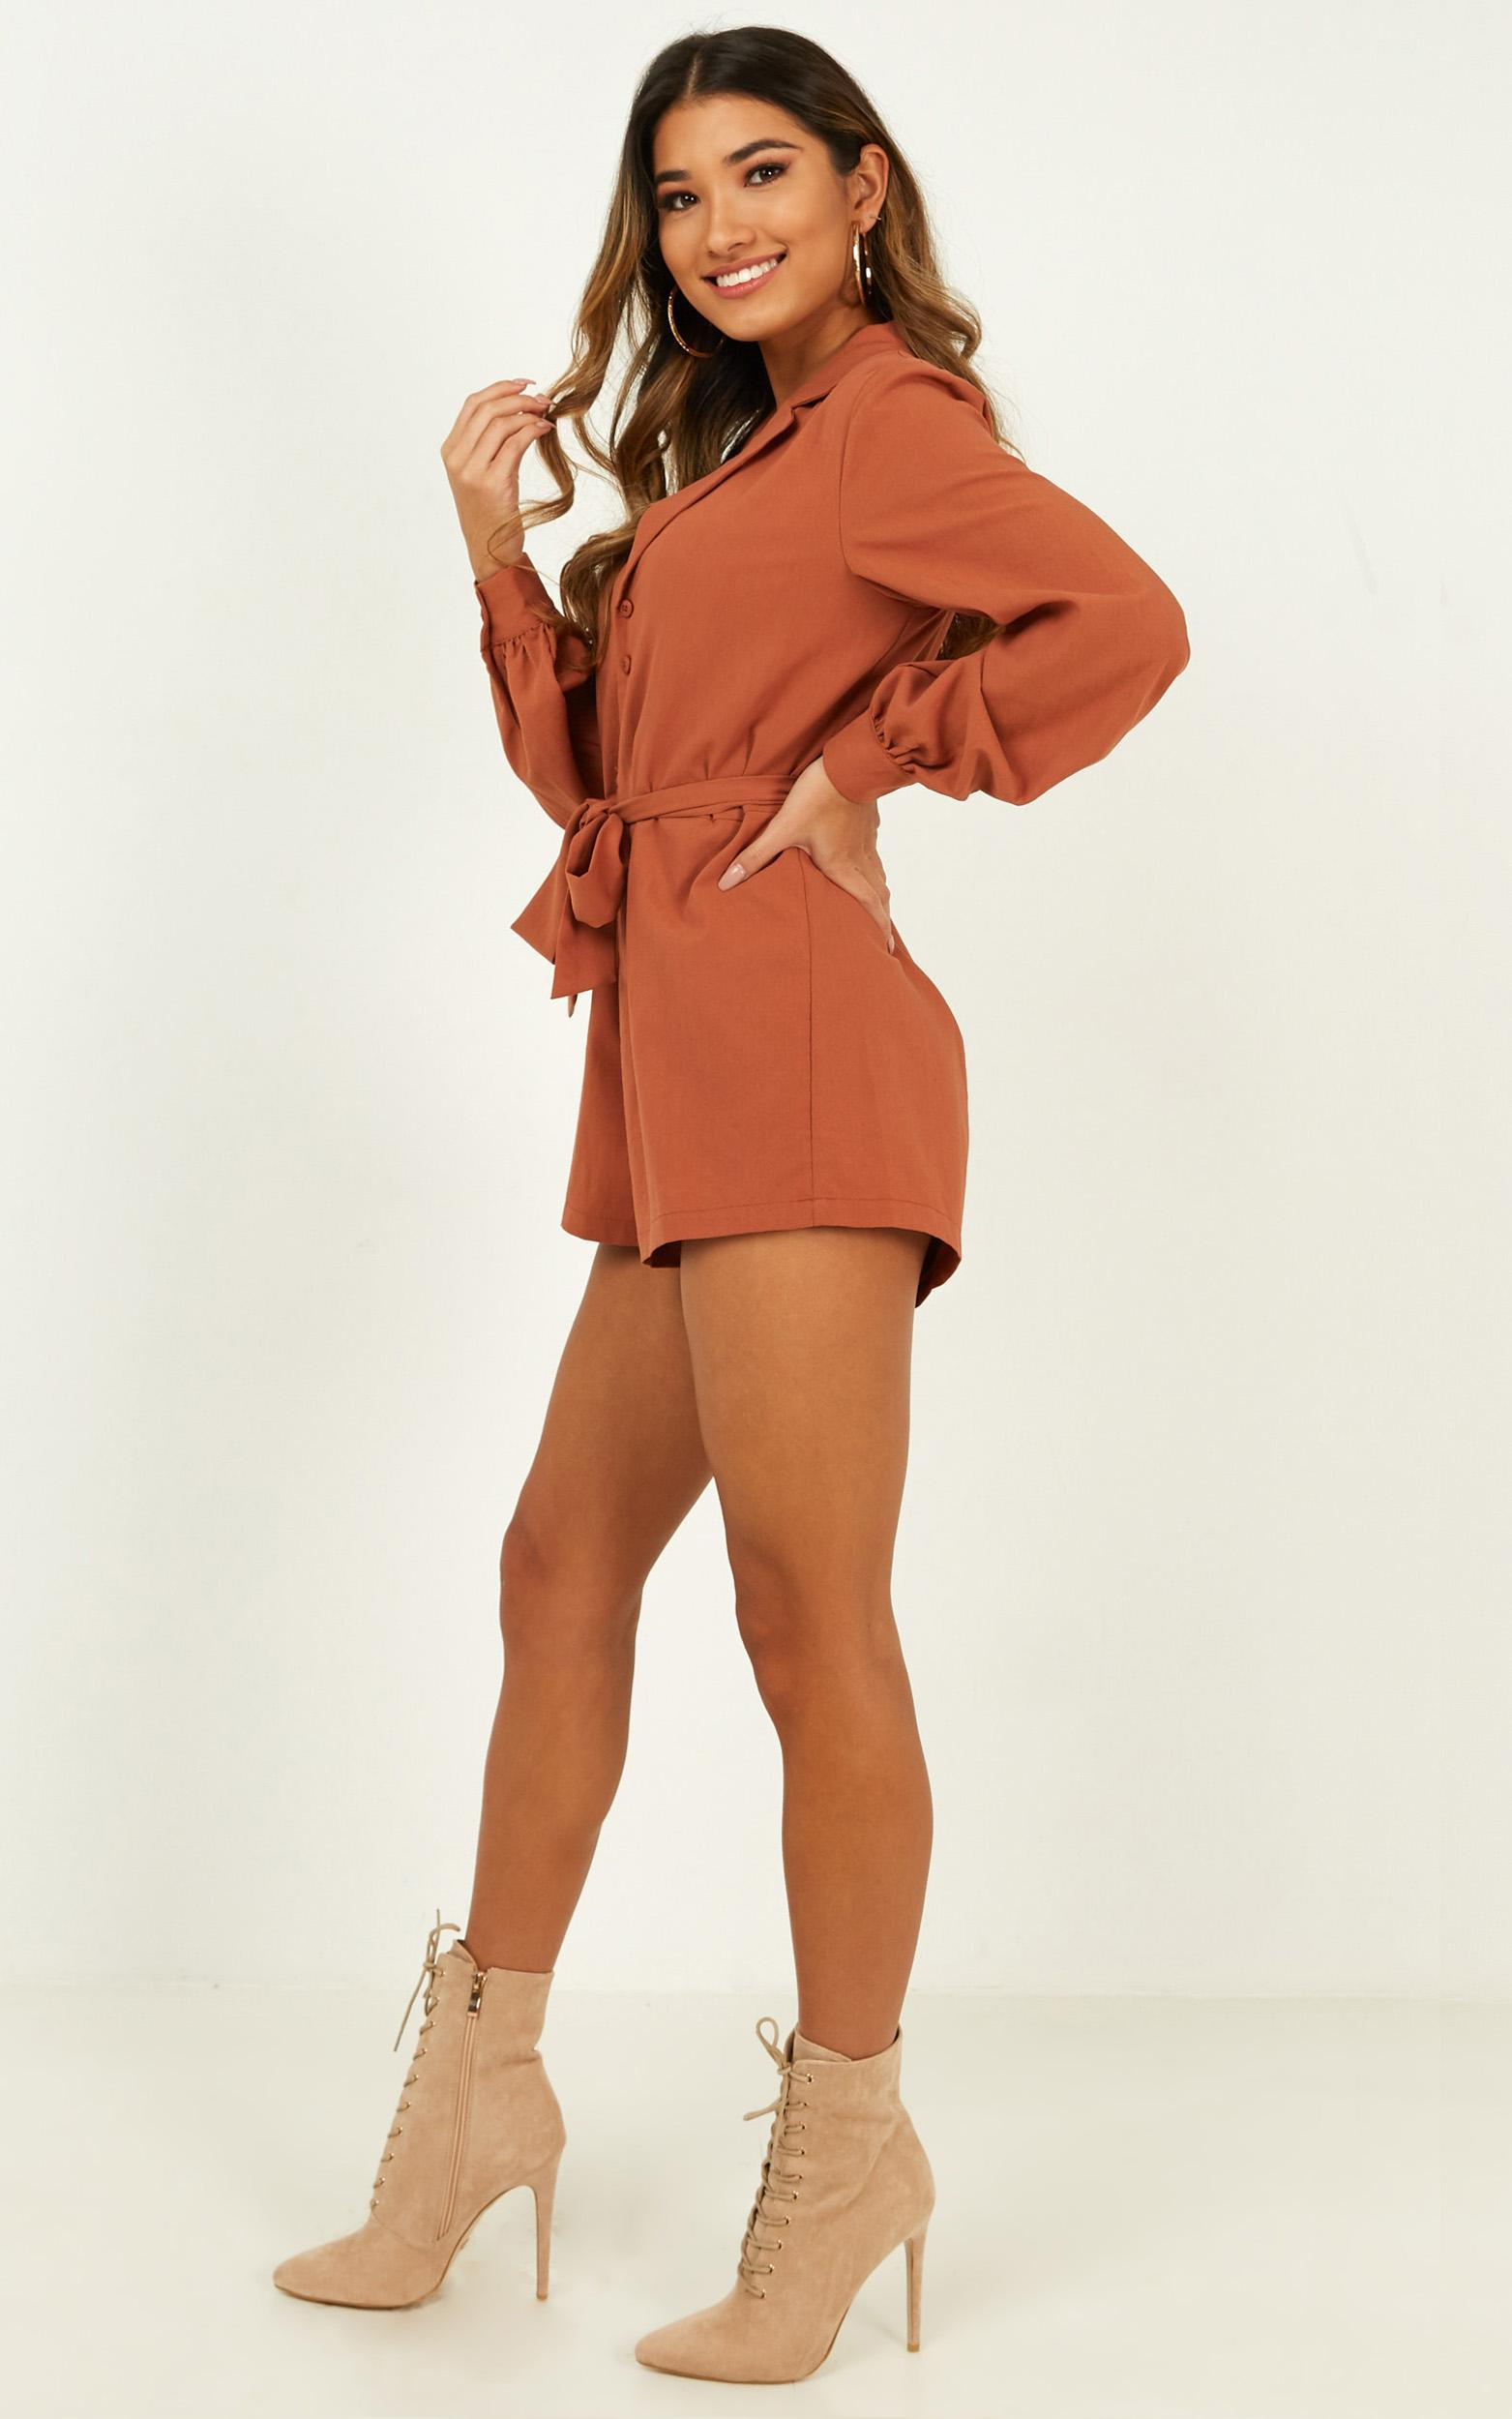 Leading Me Astray Playsuit in rust - 20 (XXXXL), Rust, hi-res image number null